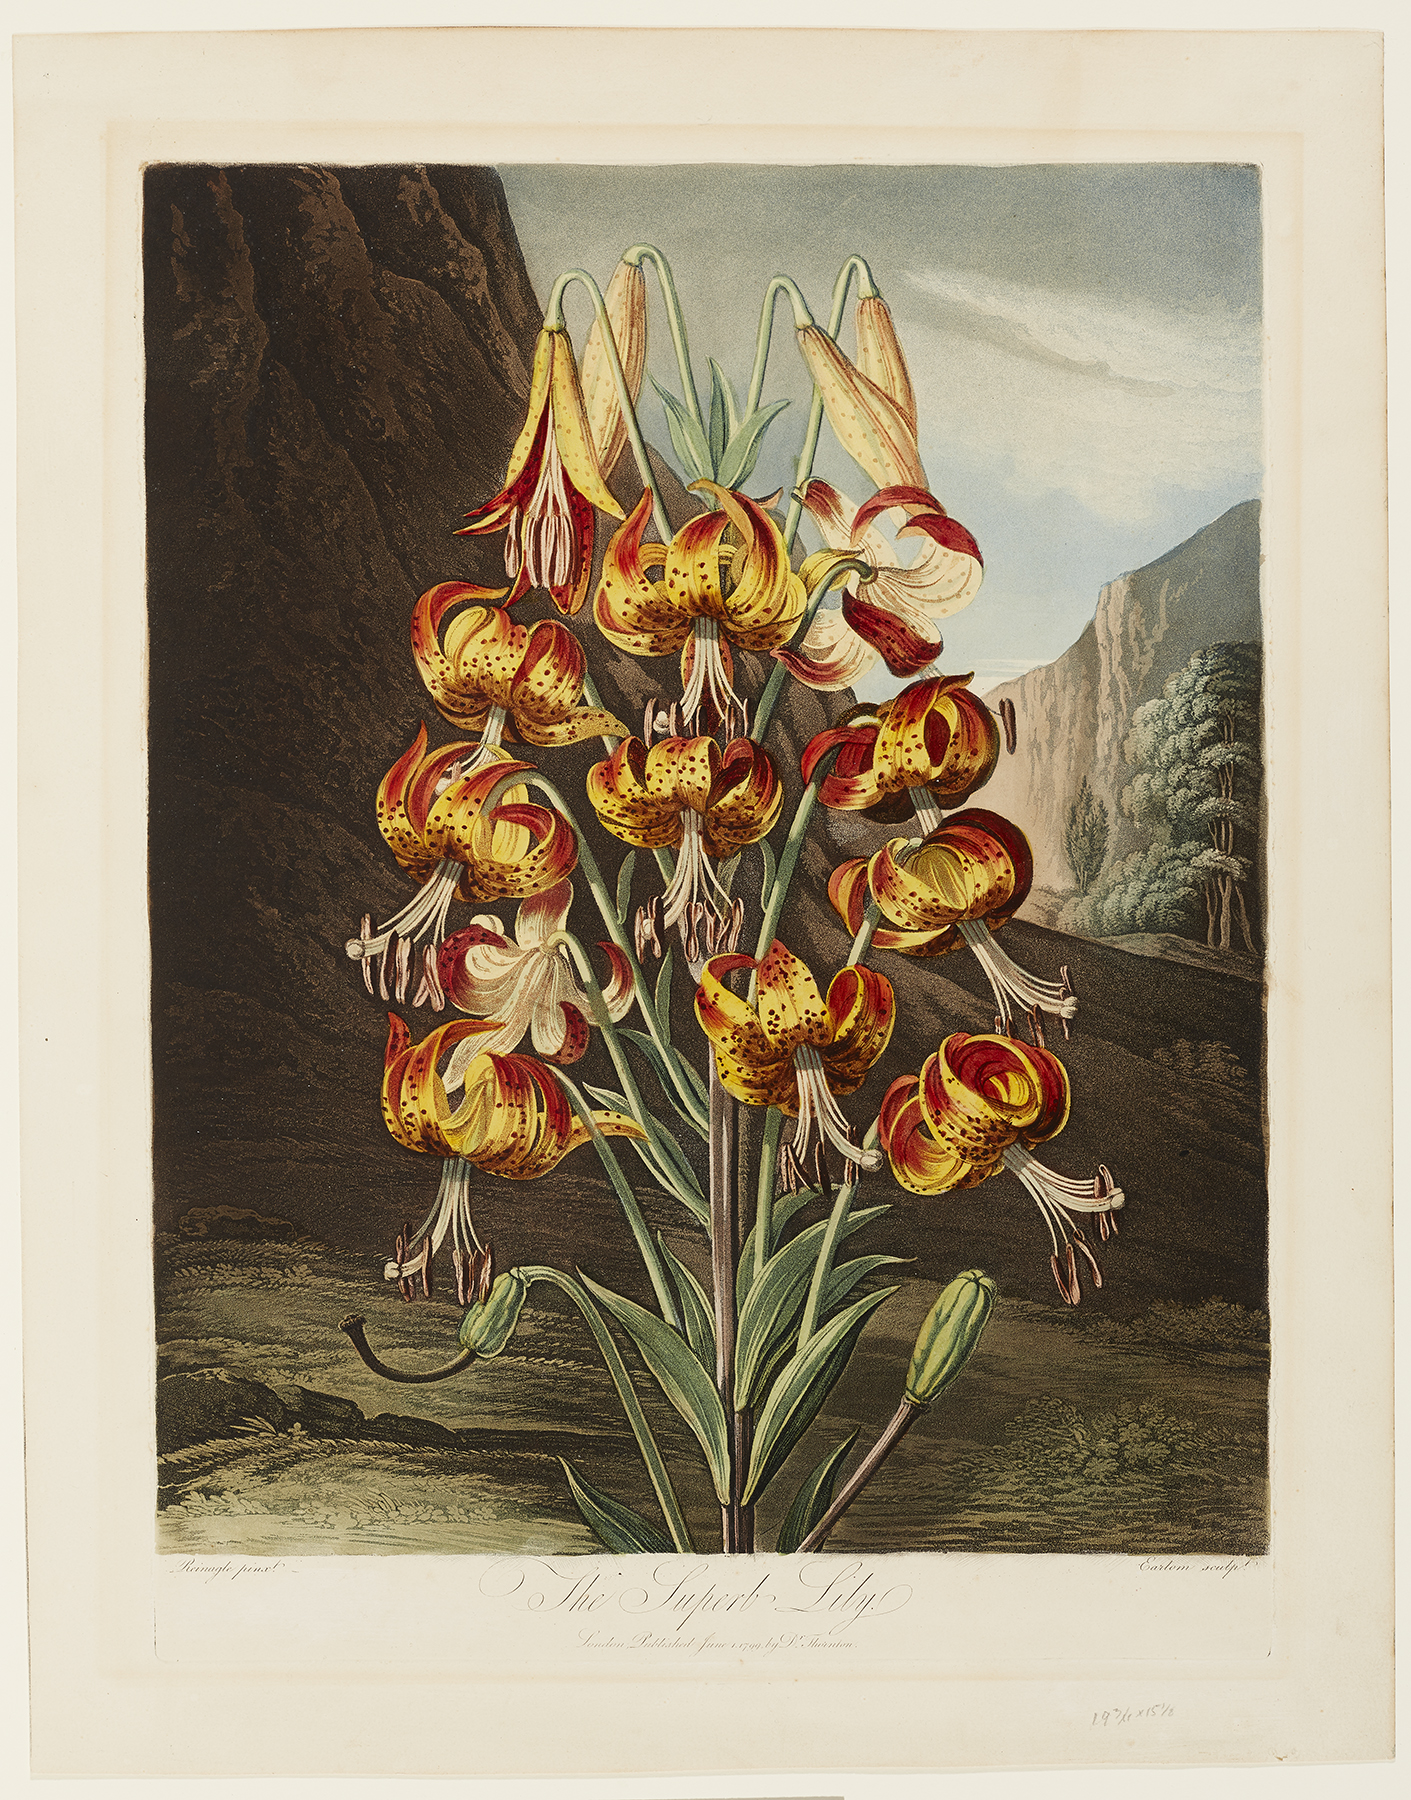 Richard Earlom (English, 1743–1822), after Philip Reinagle (English, 1749–1833), The Superb Lily, published June 1, 1799. Color aquatint, etching, stipple, and mezzotint with hand coloring, varnished. Milwaukee Art Museum, Gift of Mr. and Mrs. William F. Pabst Jr. and Mr. and Mrs. Harry Starr III in memory of Mrs. Carl Eberbach M1973.100. Photog credit: John R. Glembin.